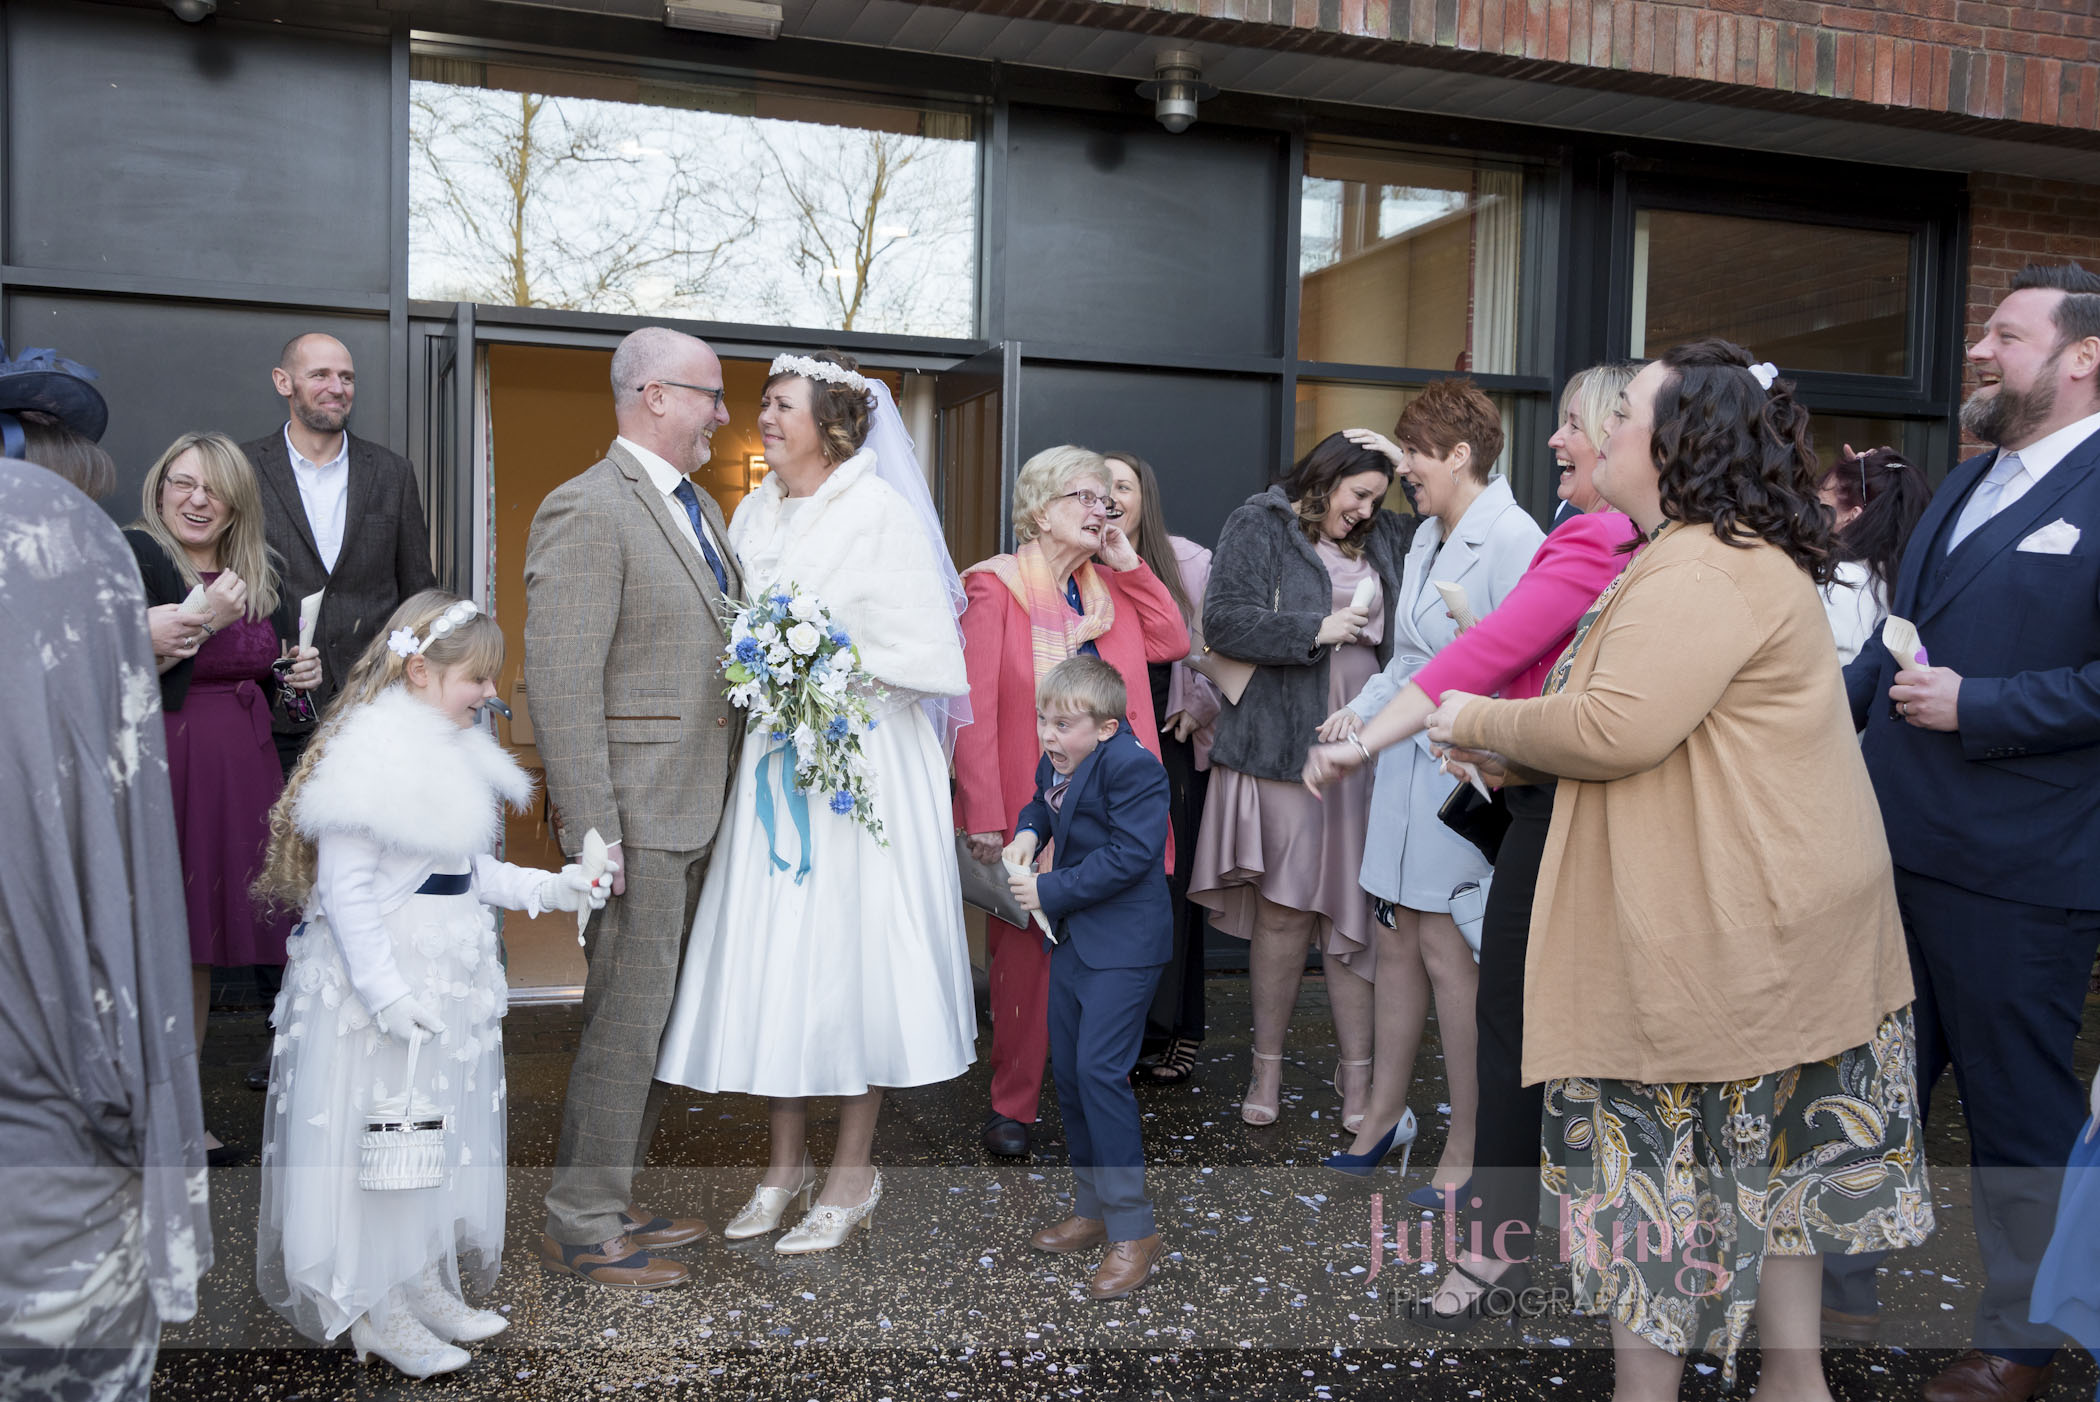 Registry office weddings photography Bromsgrove